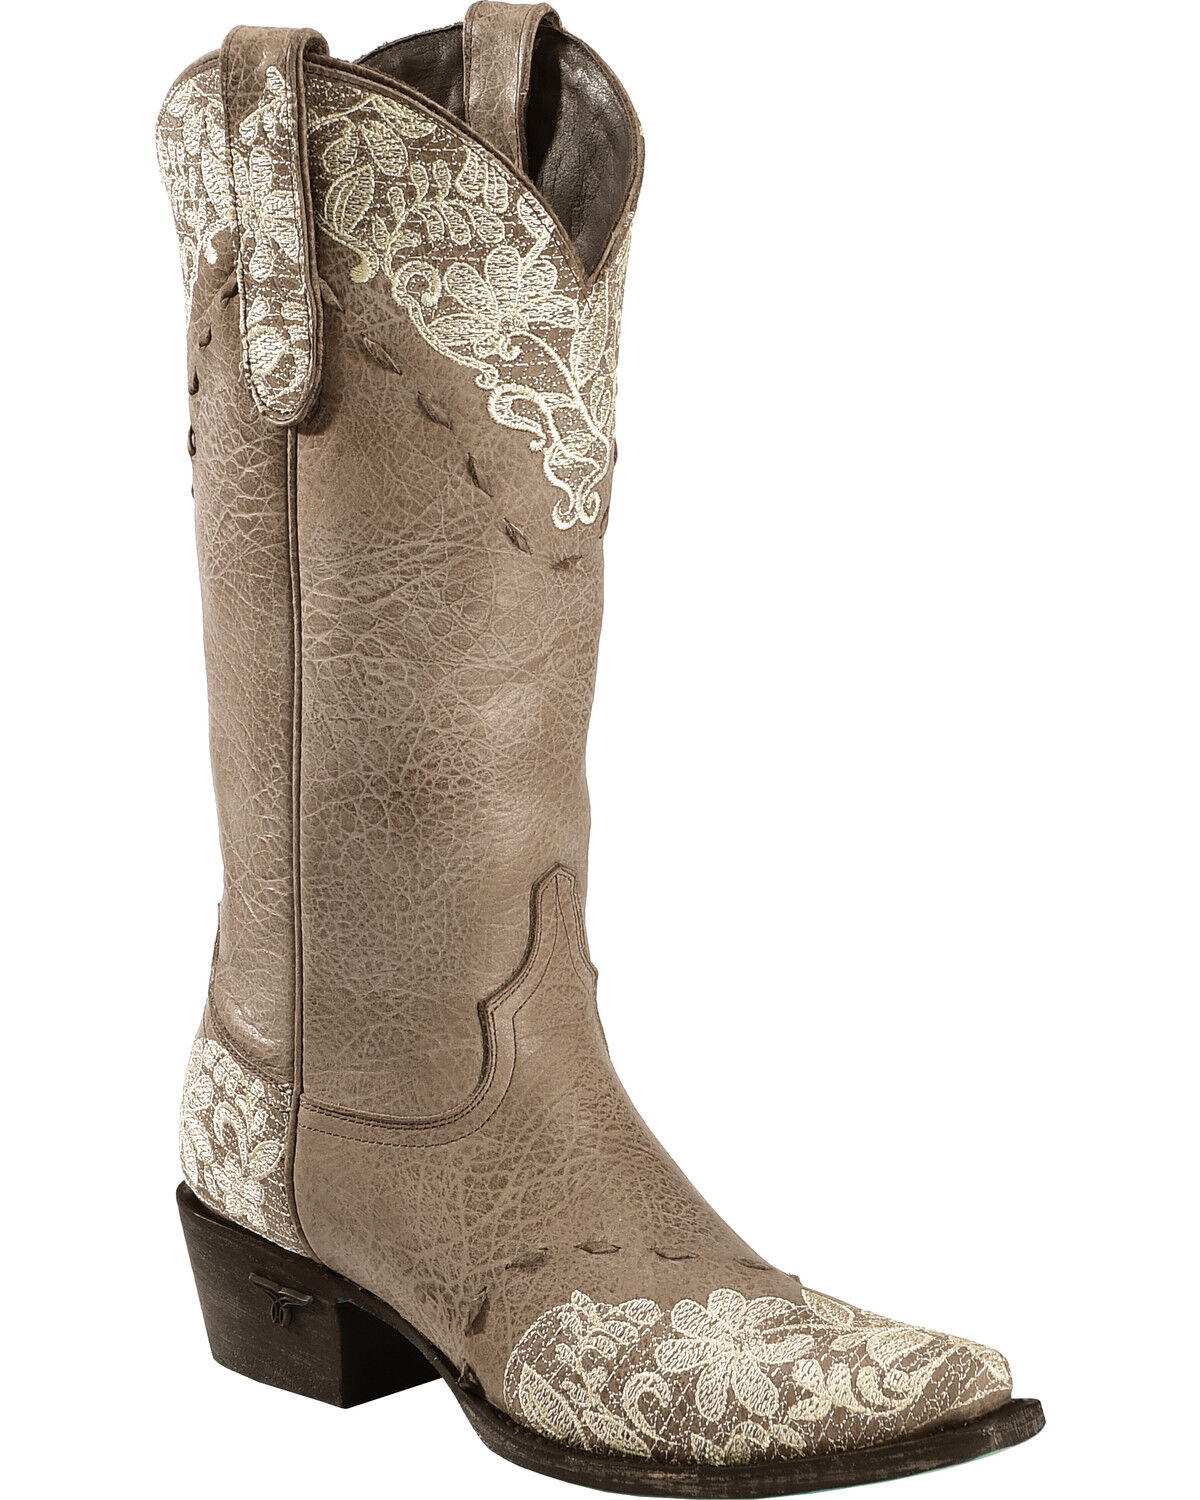 Dance Dresses with Cowboy Boots